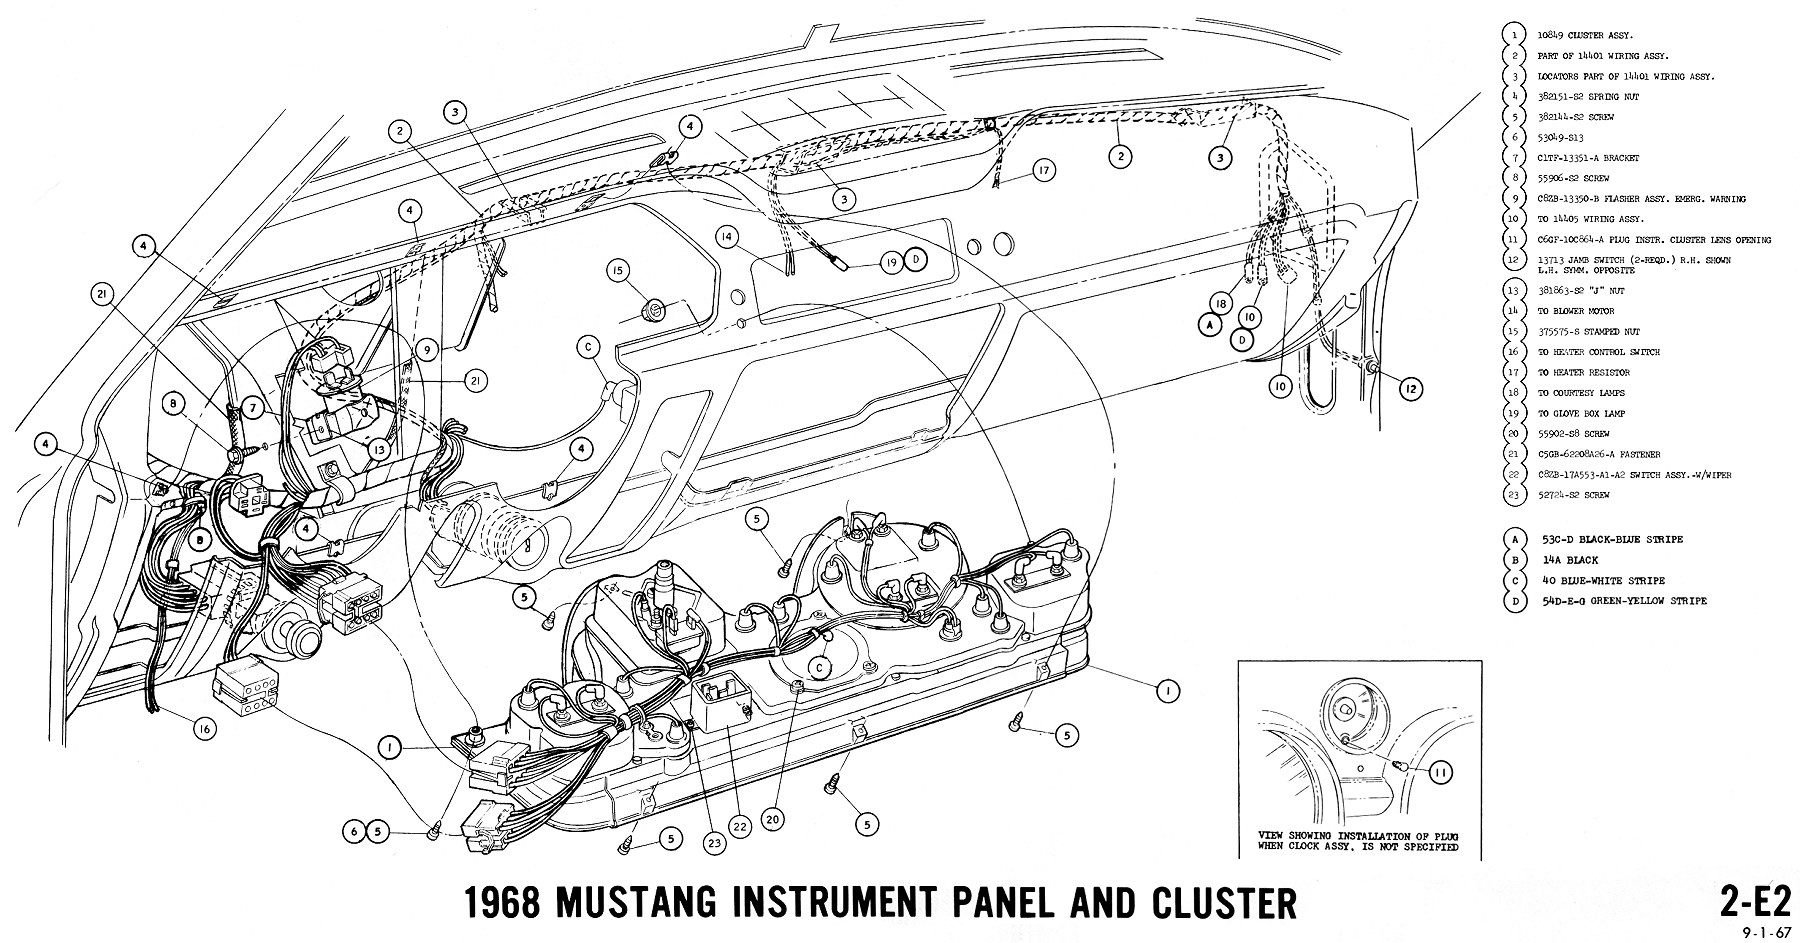 66 Mustang Fuel Gauge Wiring Diagram Electrical Schematics Caprice Cluster Diy Enthusiasts Diagrams U2022 Clutch